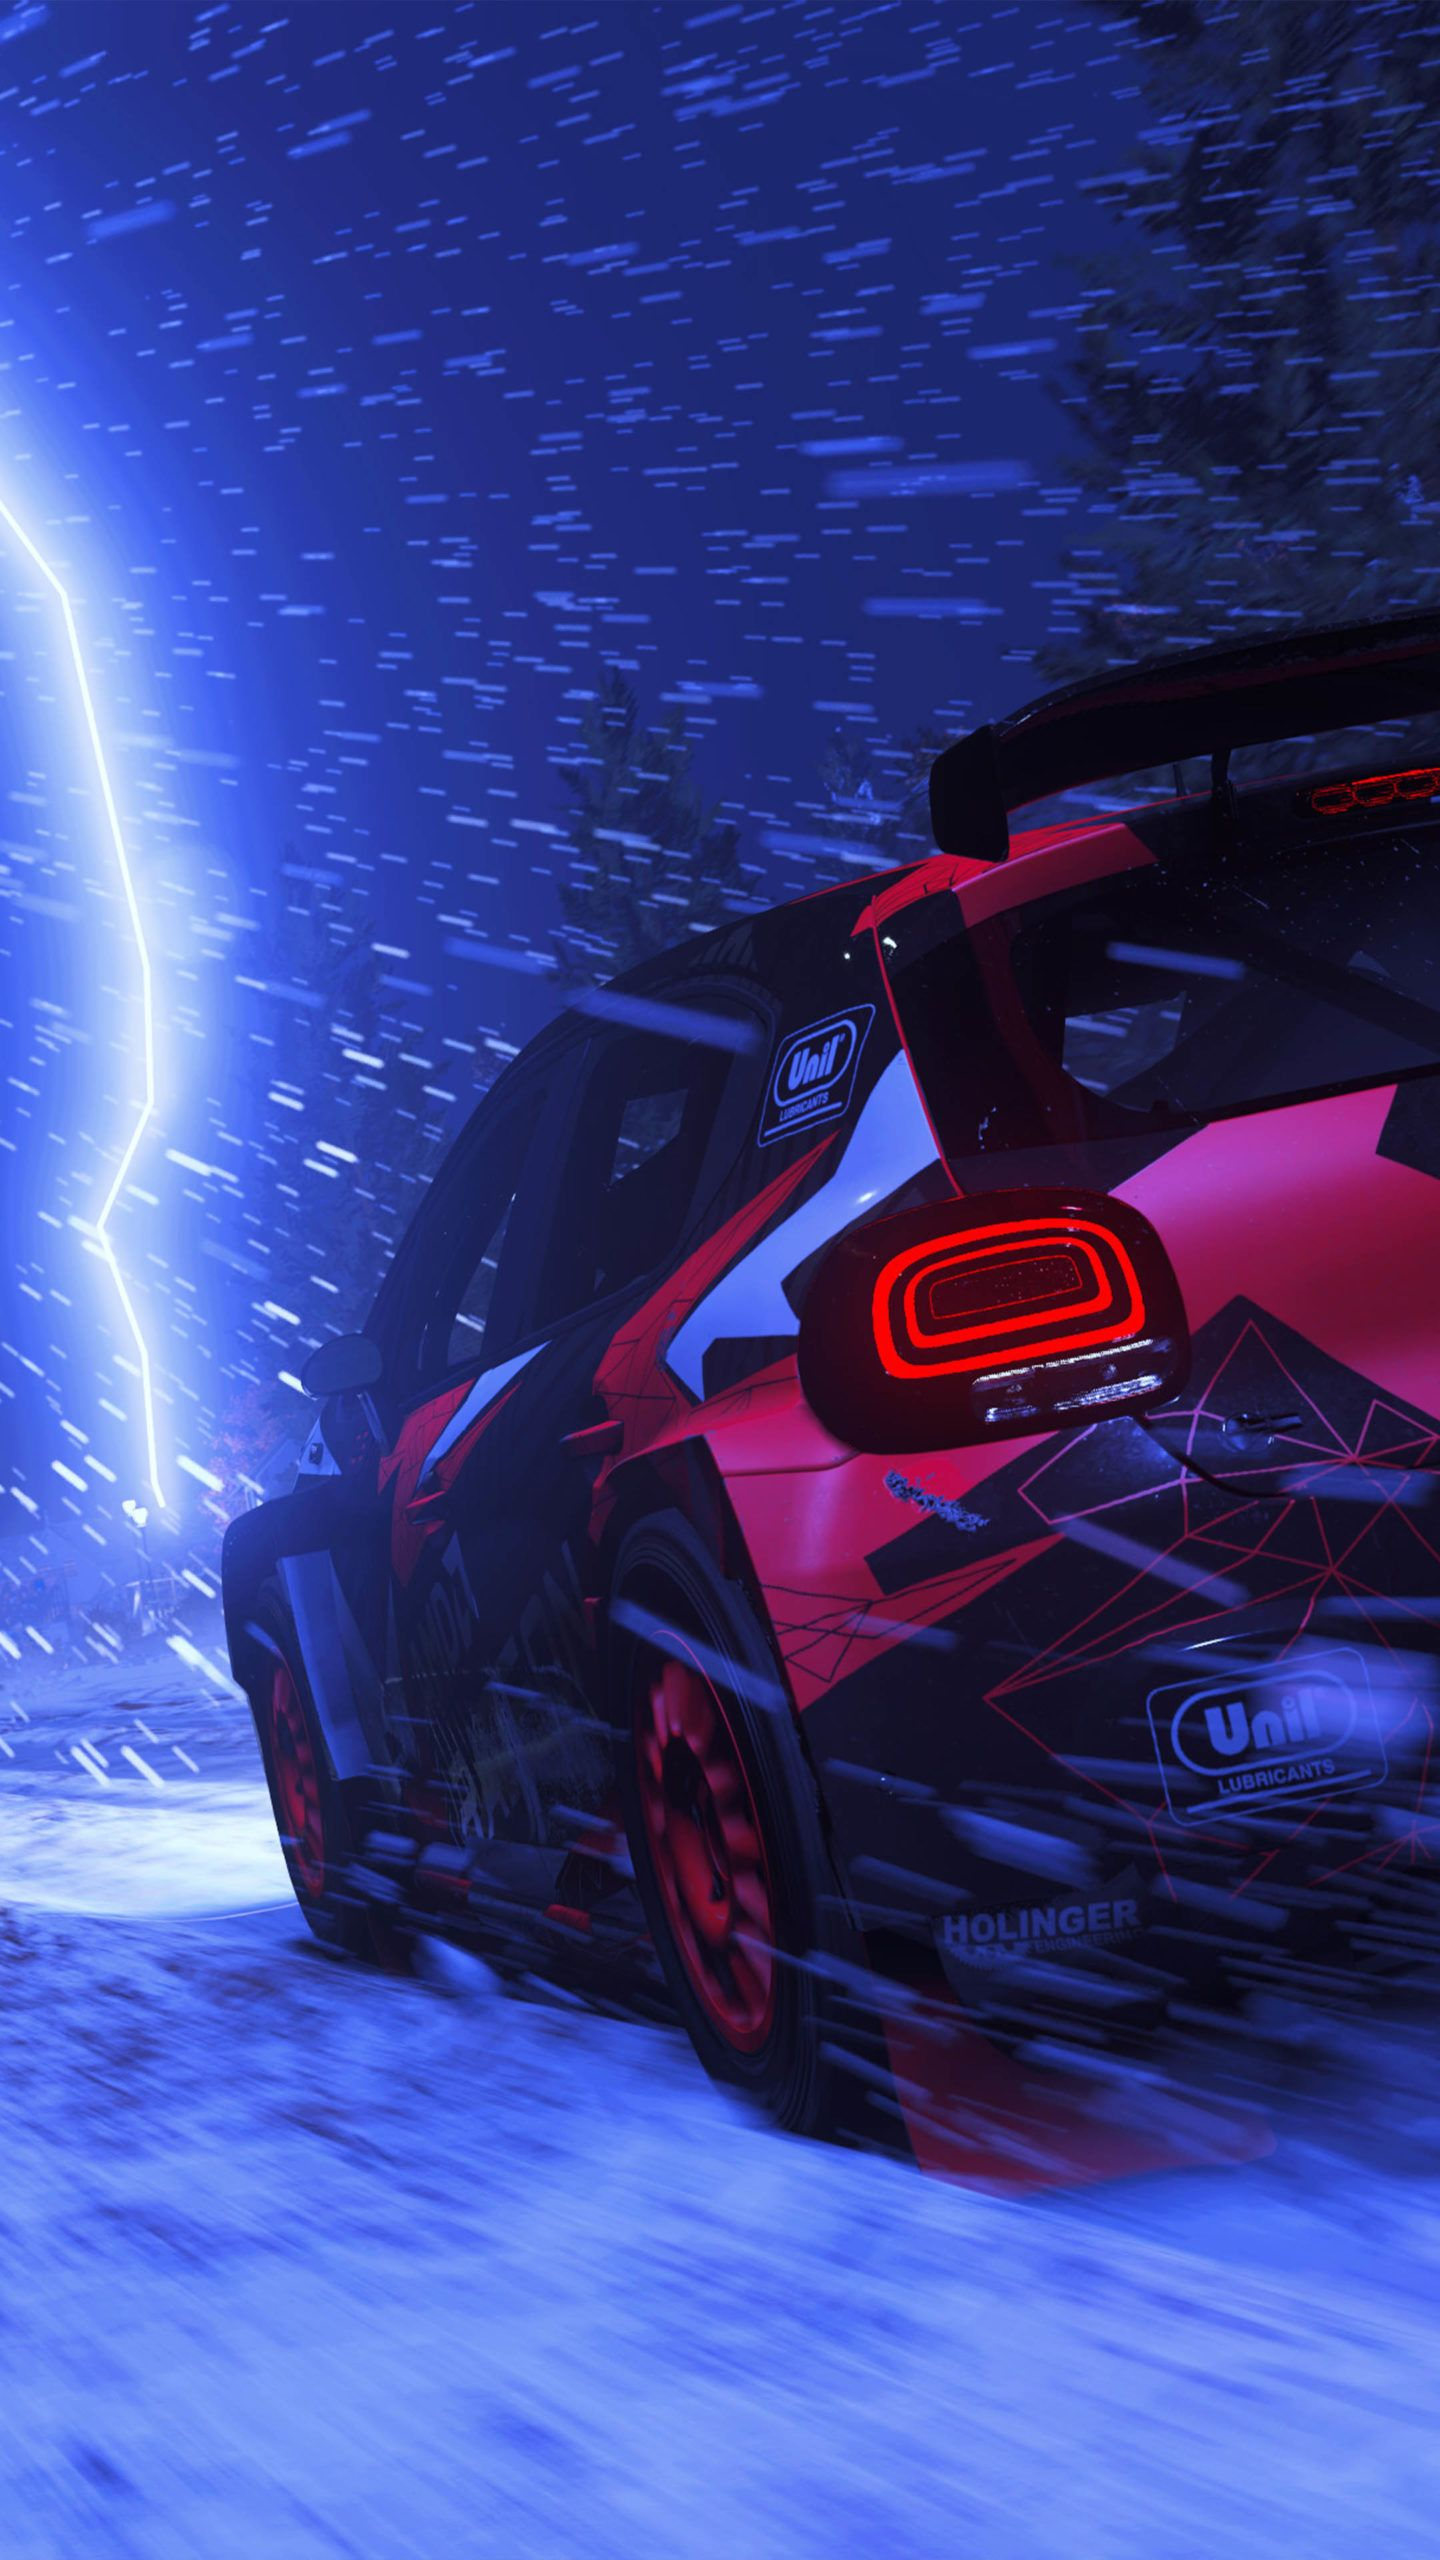 While the ipad can run for several hours on its own, it doesn't have the power to go for a full day of driving and computing and then play a movie at the motel at night. Dirt 5 Race Lightening 4k Ultra Hd Mobile Wallpaper In 2021 Futuristic Cars Design Car Wallpapers Car Iphone Wallpaper